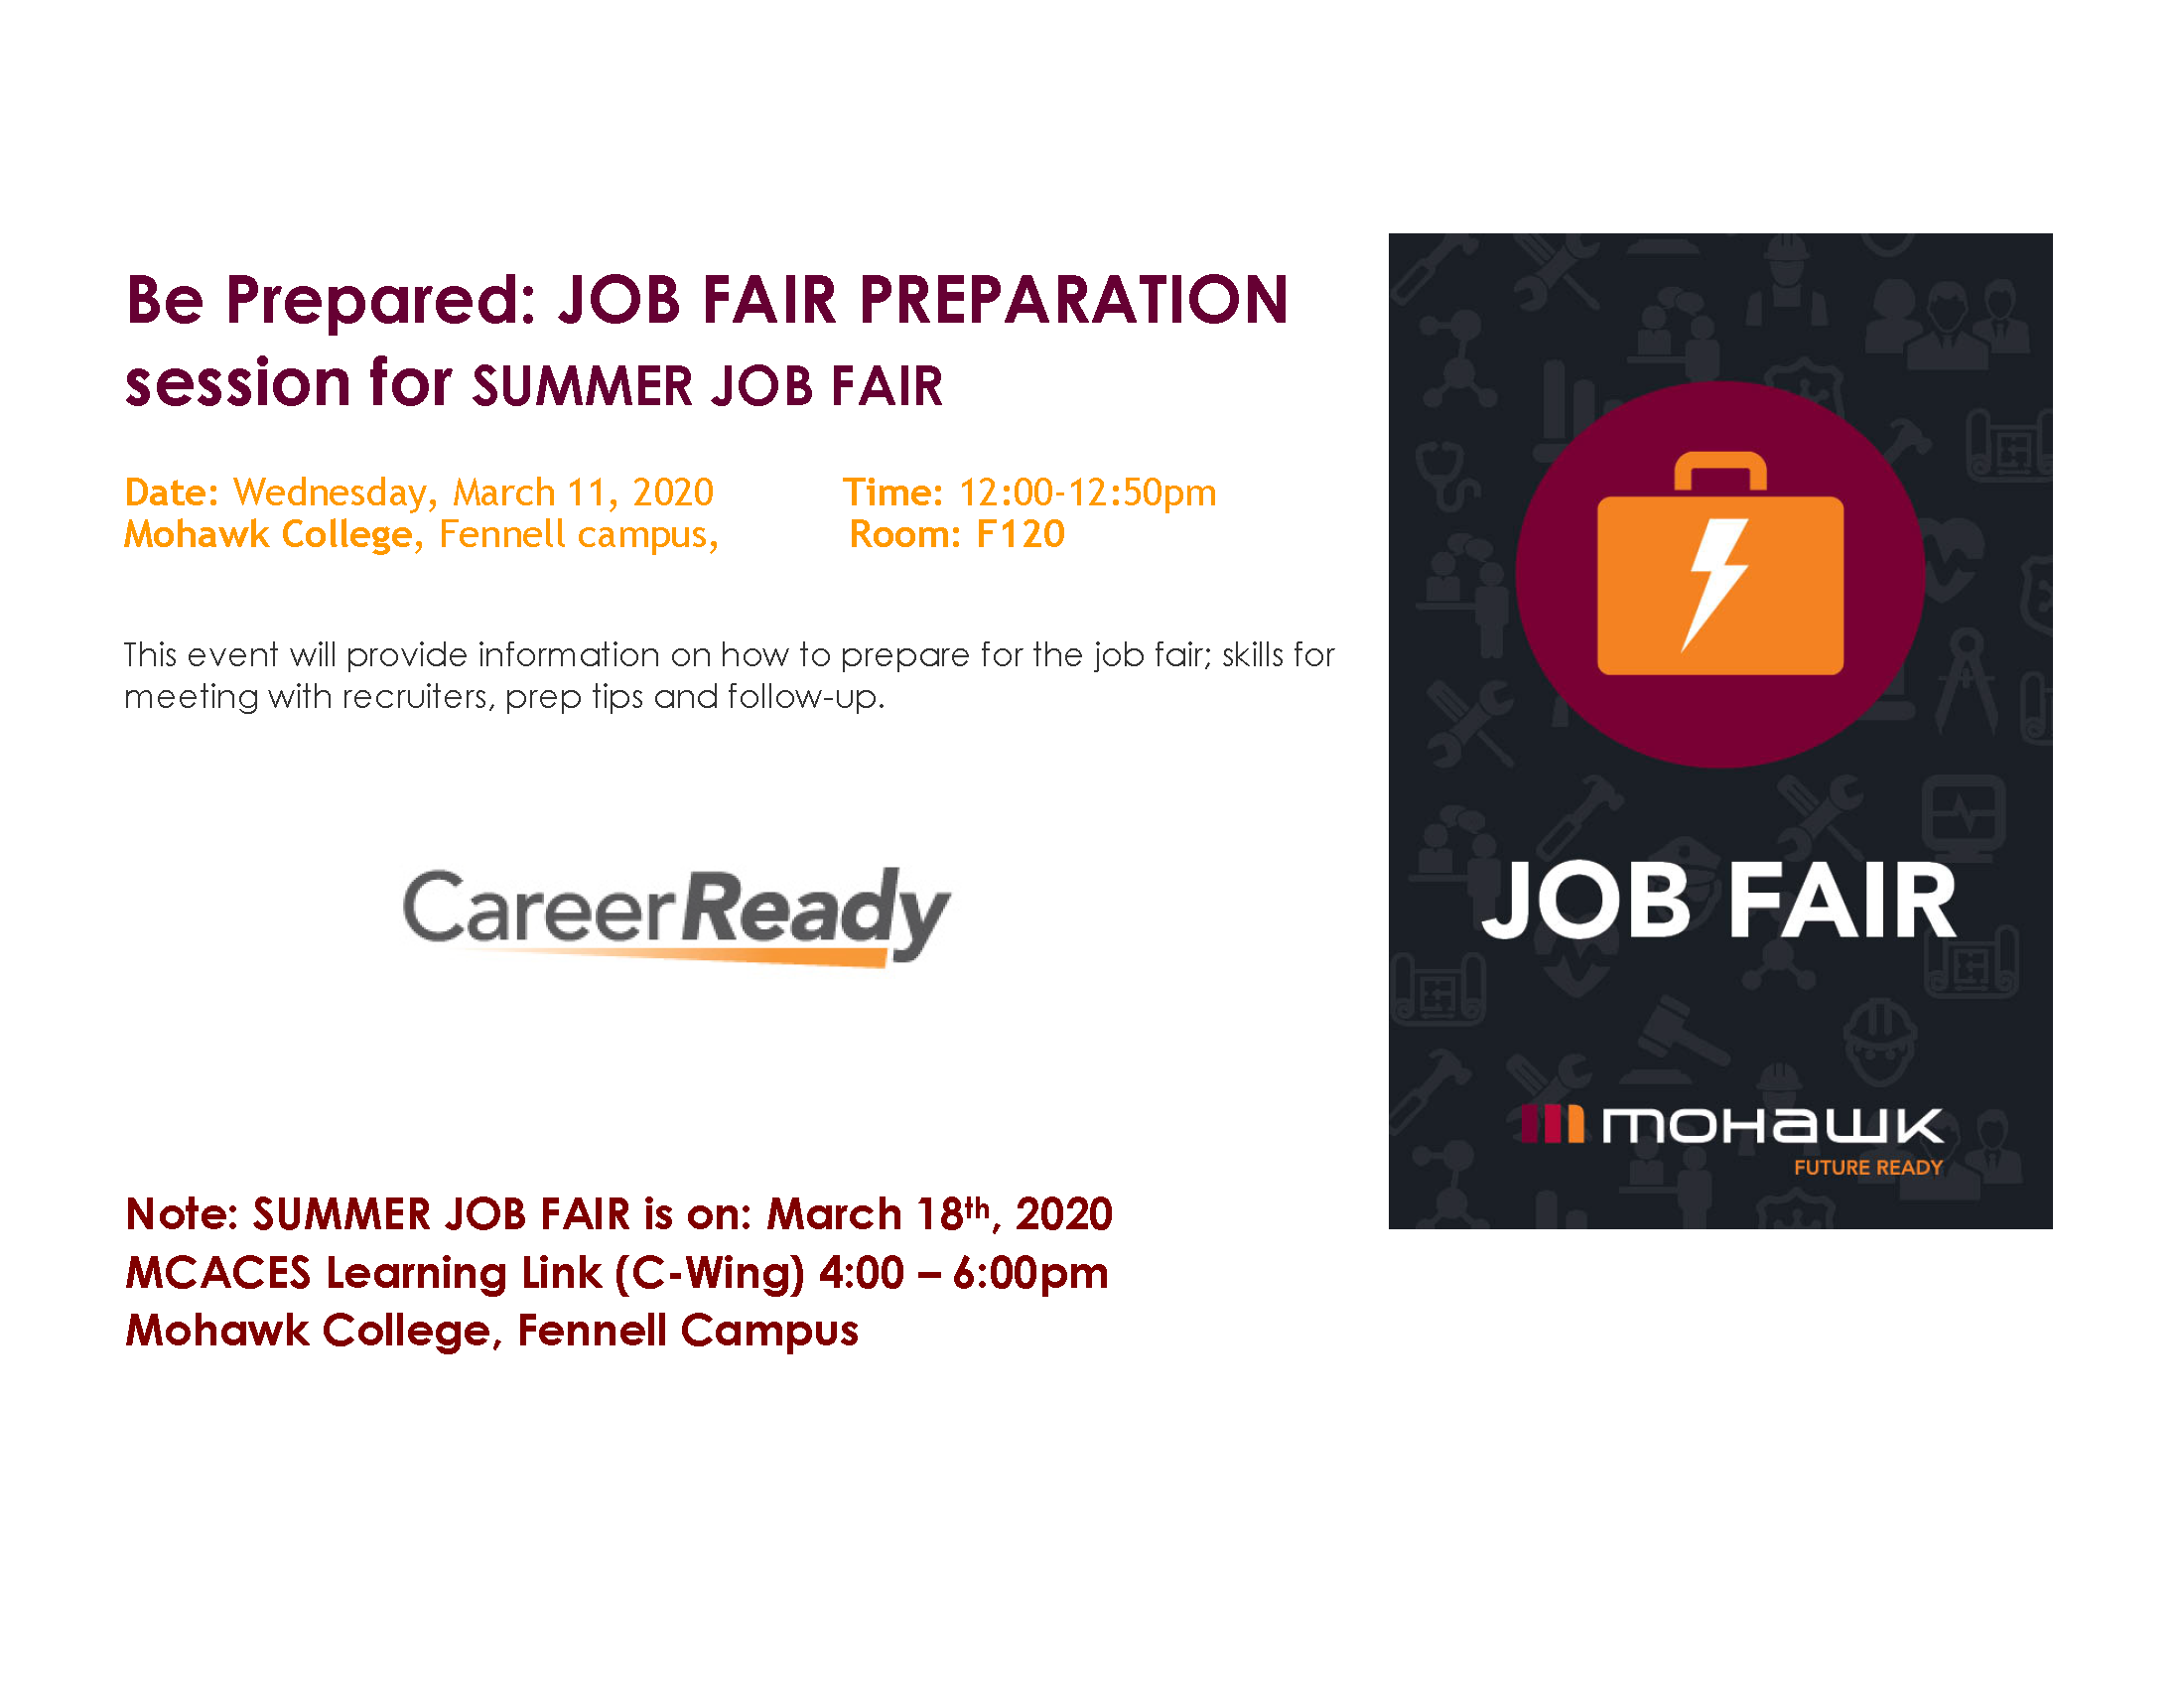 Be Prepared: JOB FAIR PREPARATION session for SUMMER JOB FAIR Date: Wednesday, March 11, 2020           Time: 12:00-12:50pm Mohawk College, Fennell campus,           Room: F120  This event will provide information on how to prepare for the job fair; skills for meeting with recruiters, prep tips and follow-up.                     Note: SUMMER JOB FAIR is on: March 18th, 2020 MCACES Learning Link (C-Wing) 4:00 – 6:00pm Mohawk College, Fennell Campus